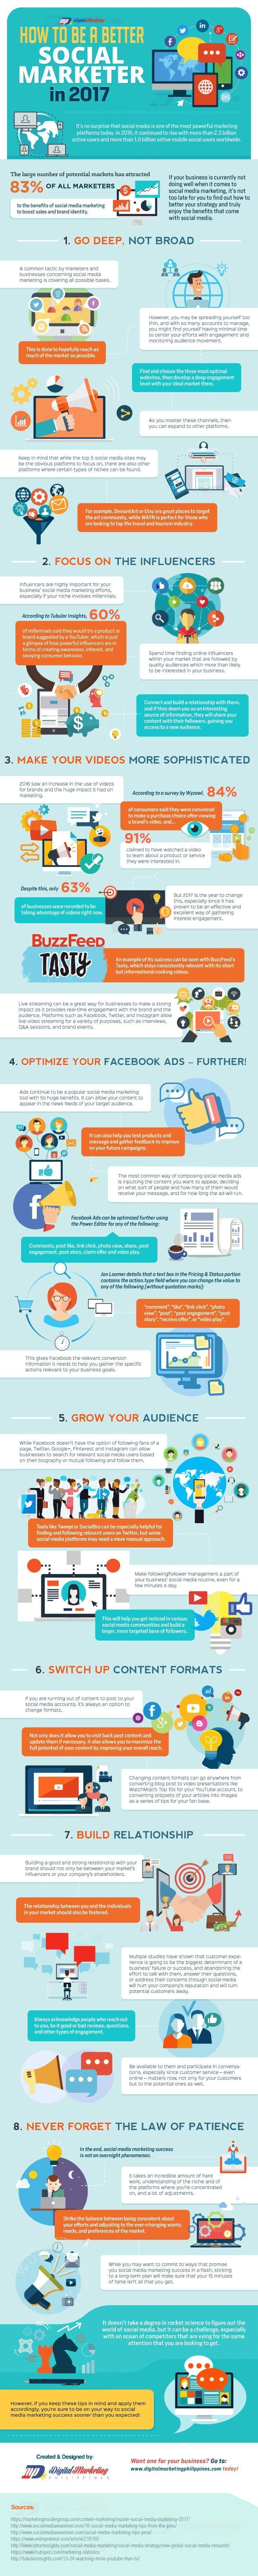 Social media marketing tips for small businesses: One of your main weapons in digital marketing is social media. Learn to be a better social marketer with this infographic.